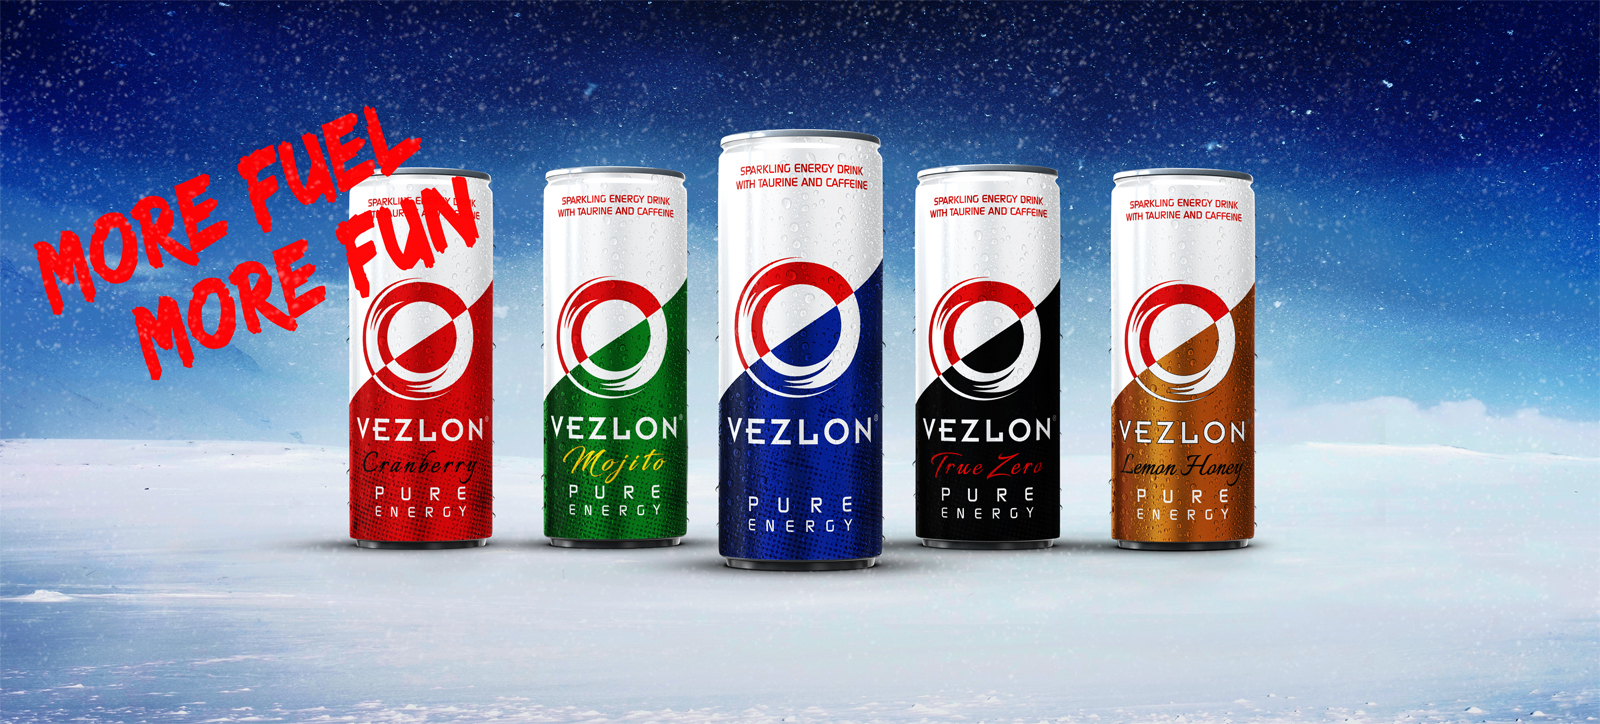 VEZLON Energy | Premium Quality Energy Drink From Austria